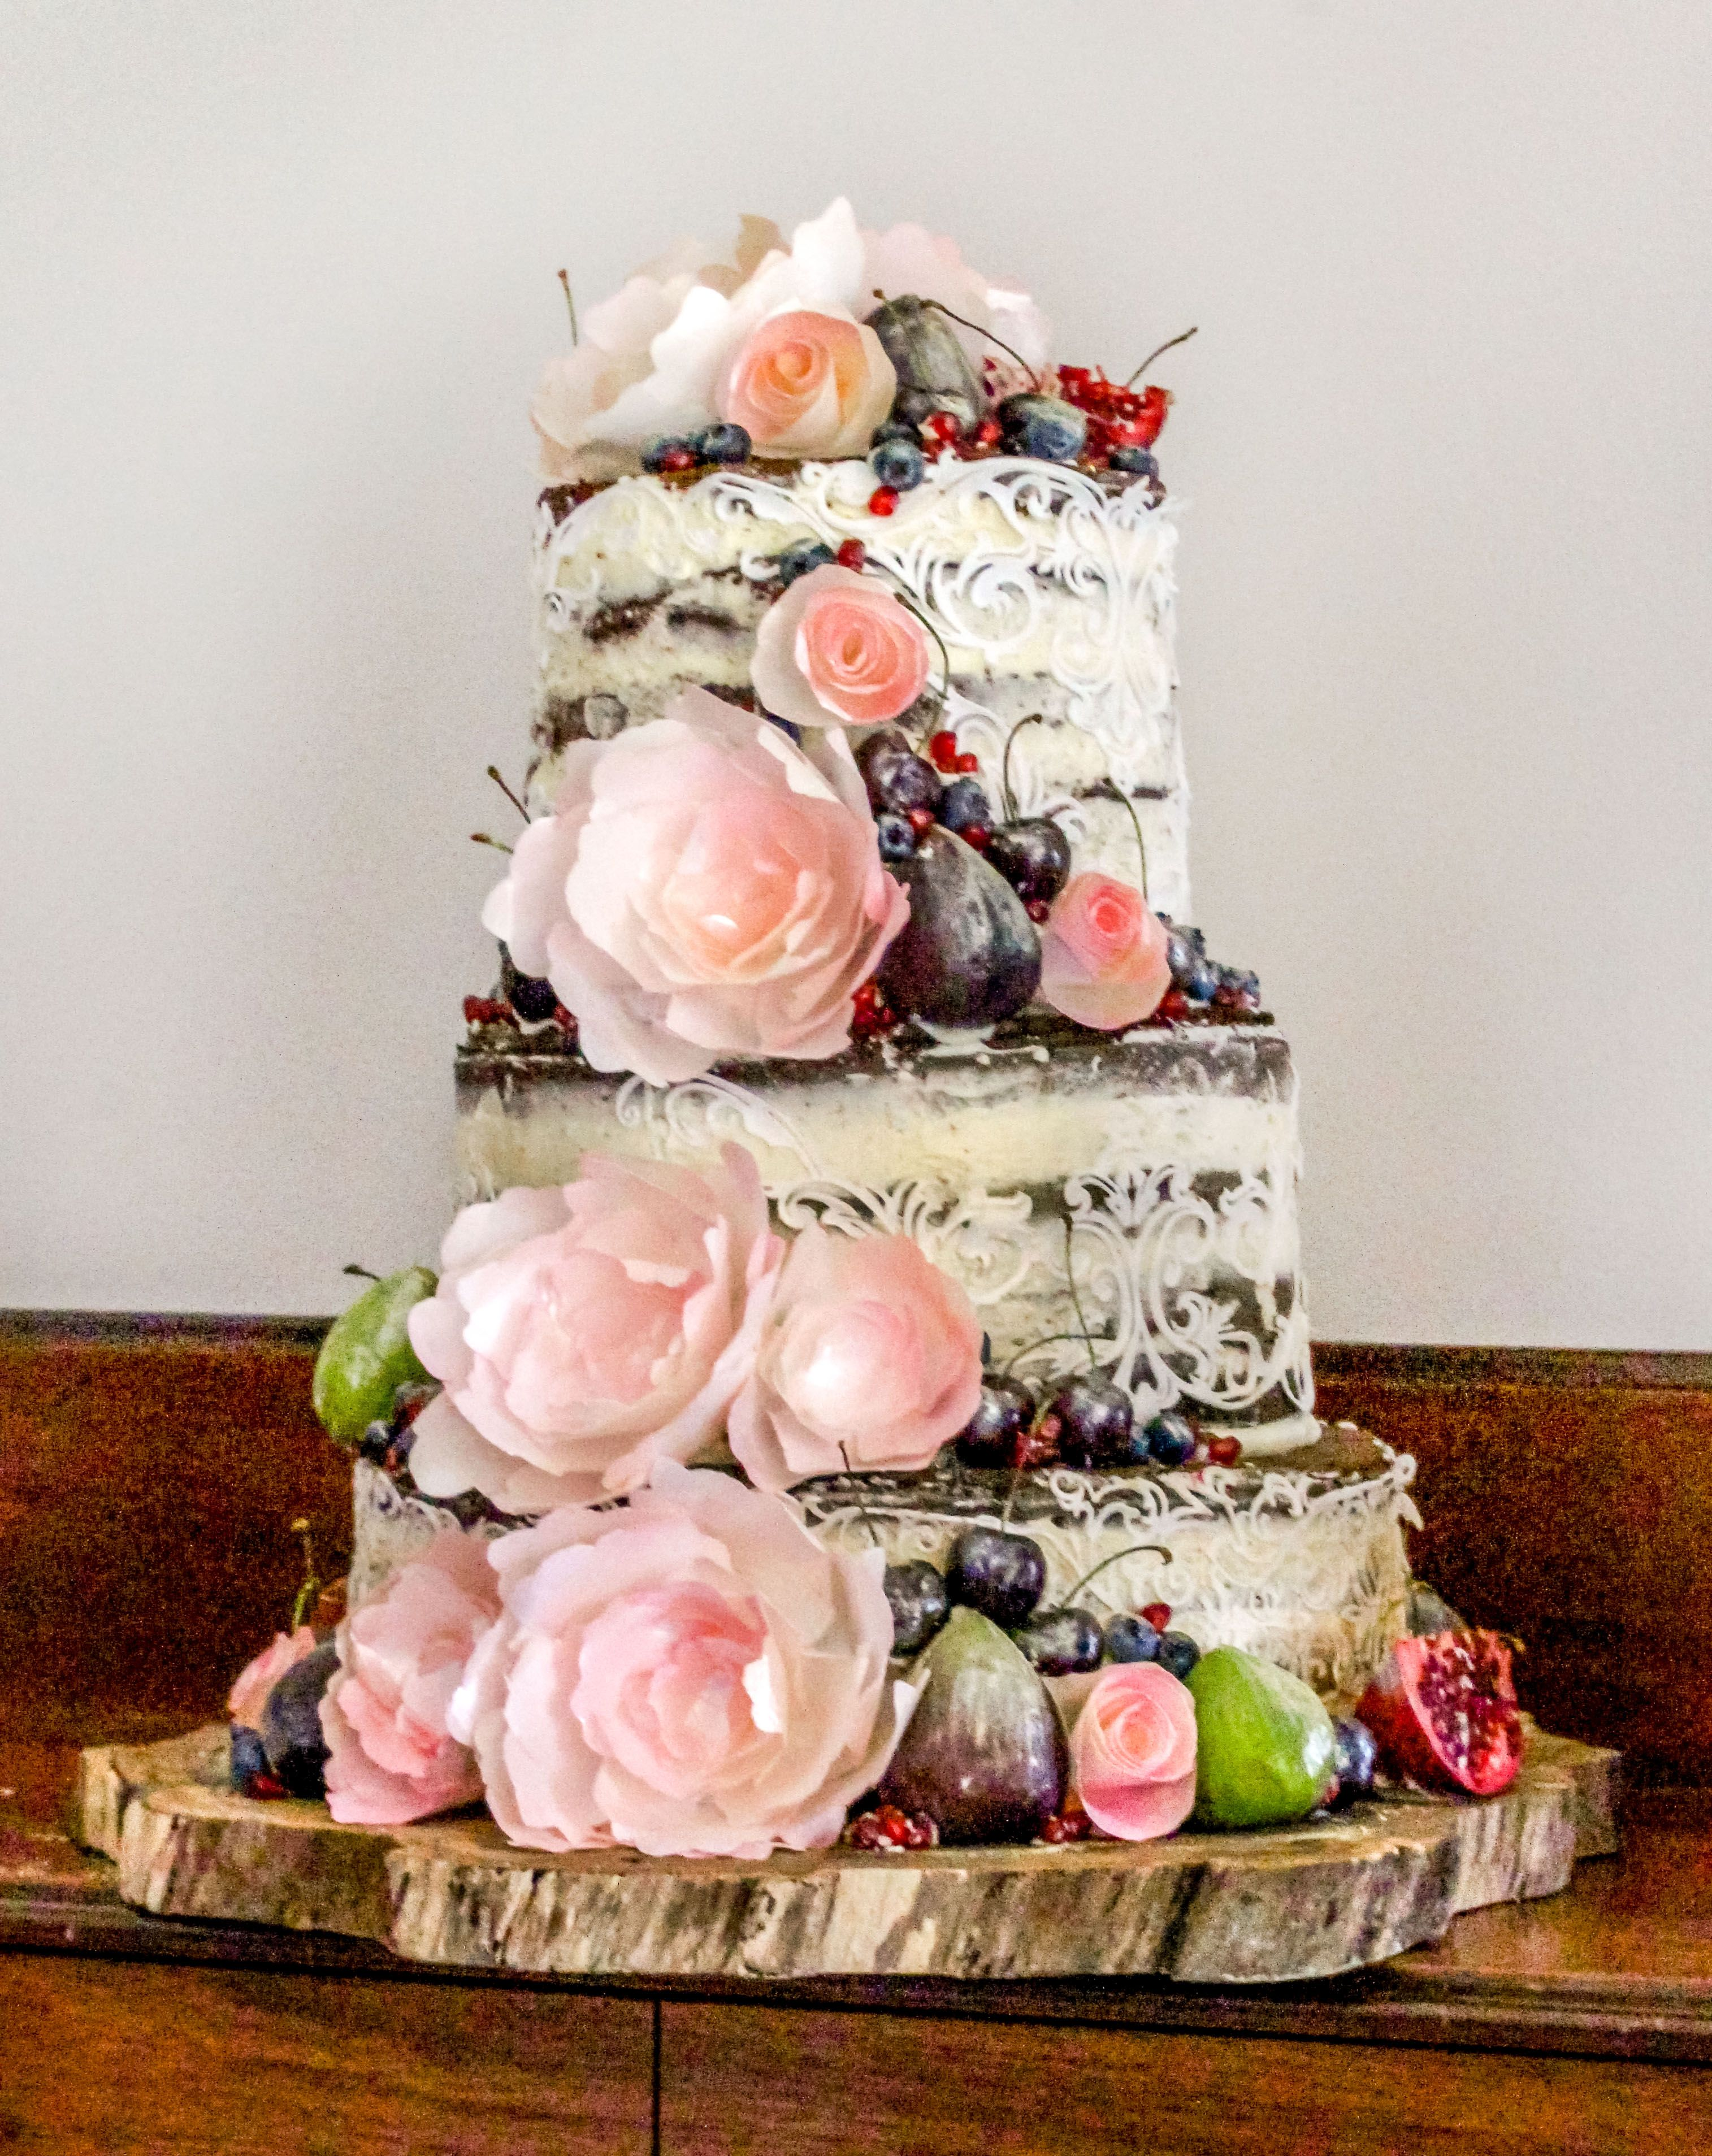 Naked Wedding Cake With Edible Lace Rice Paper Flowers And Figs